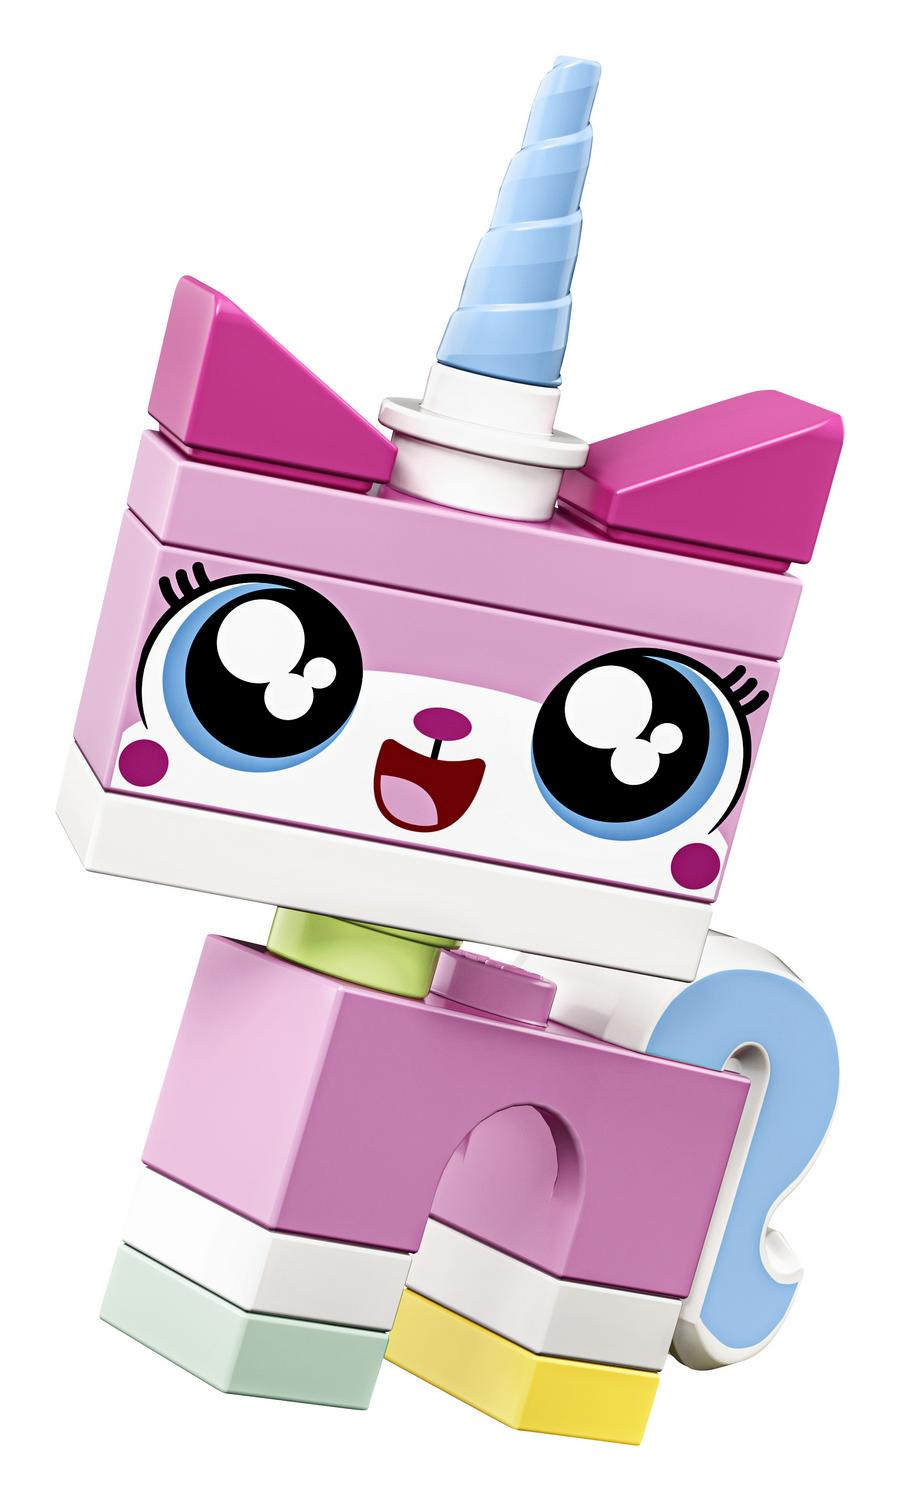 71023 Unikitty-lego-movie-2 - CoolThings.com   Cool ...